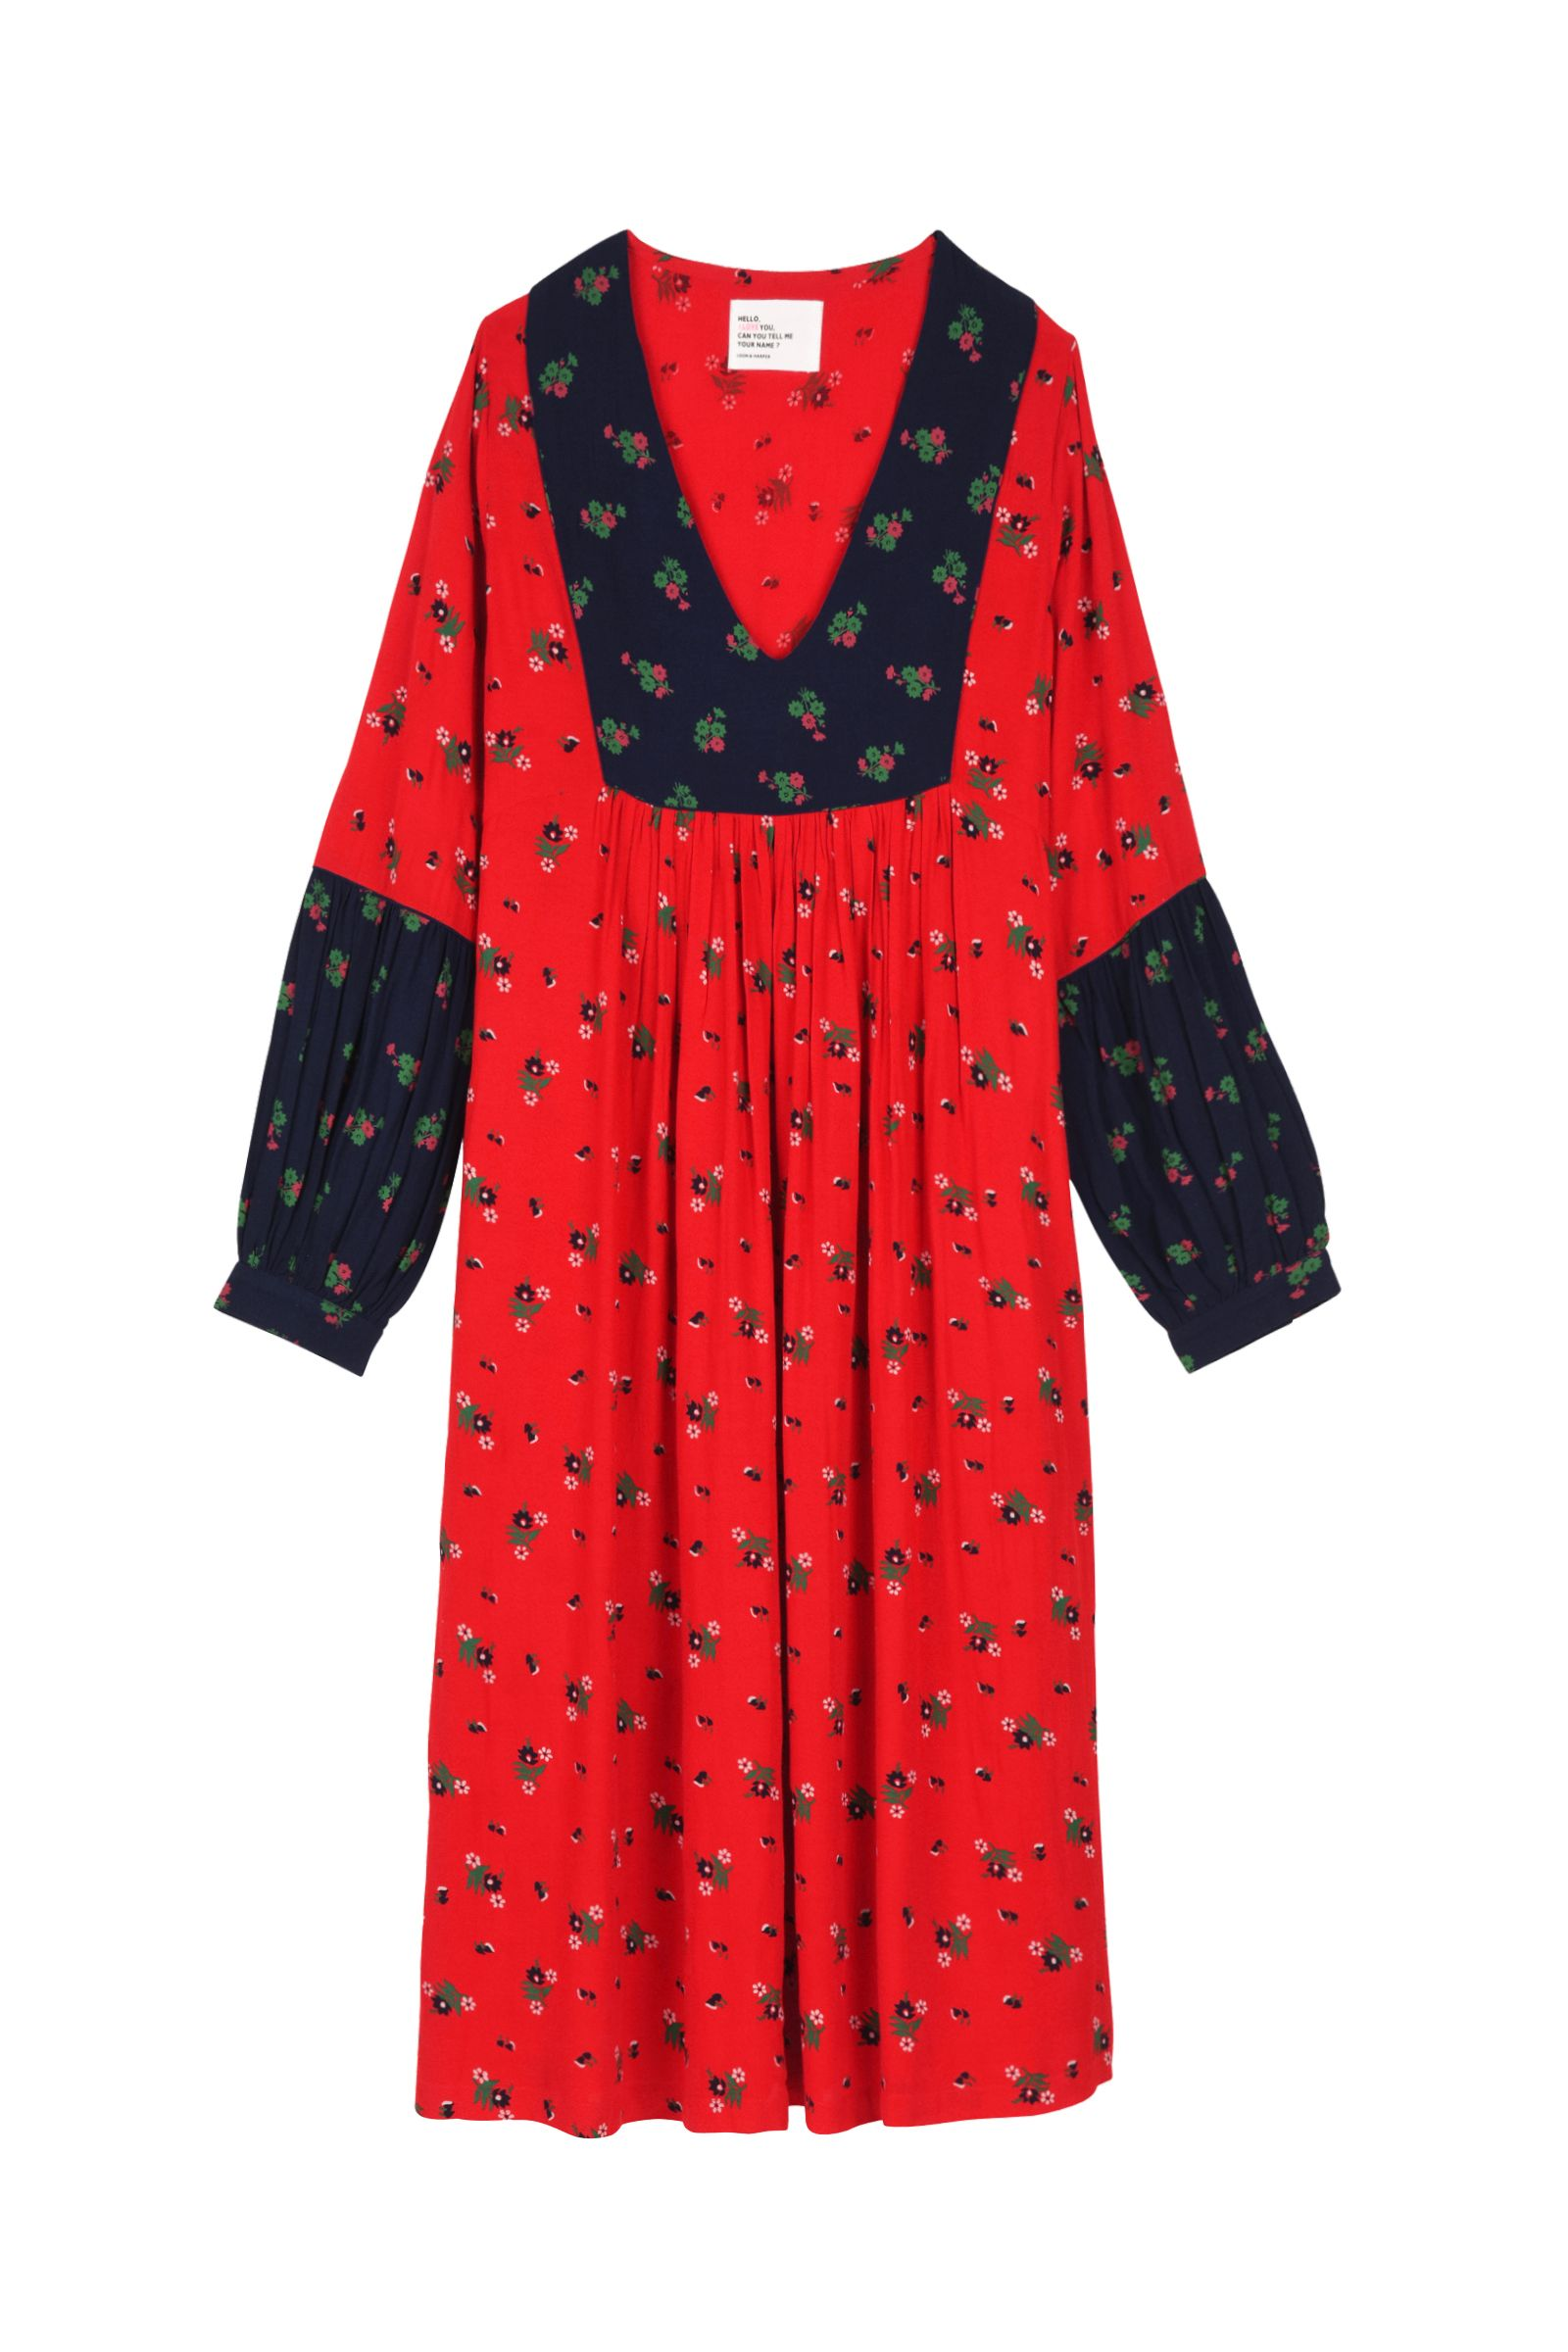 Image 4 du produit Rodrigue Flower Dress